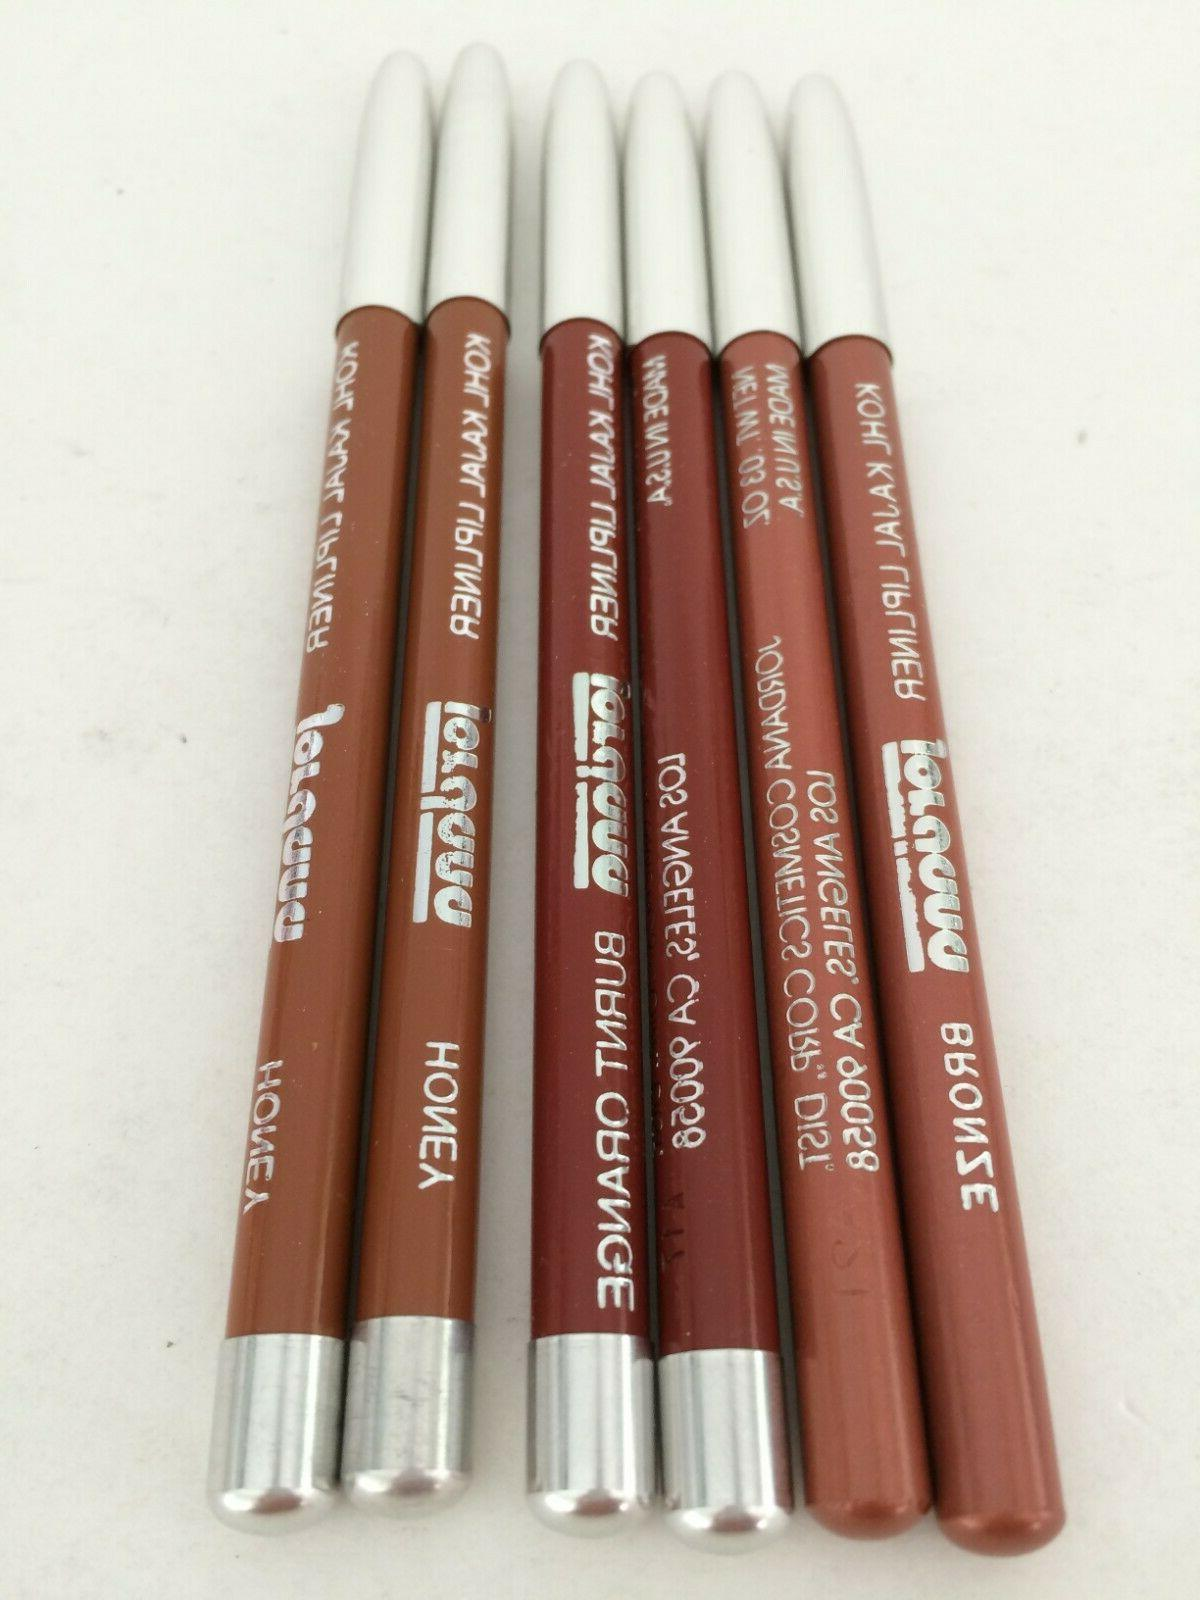 kohl kajal lip liner pencil 5 color